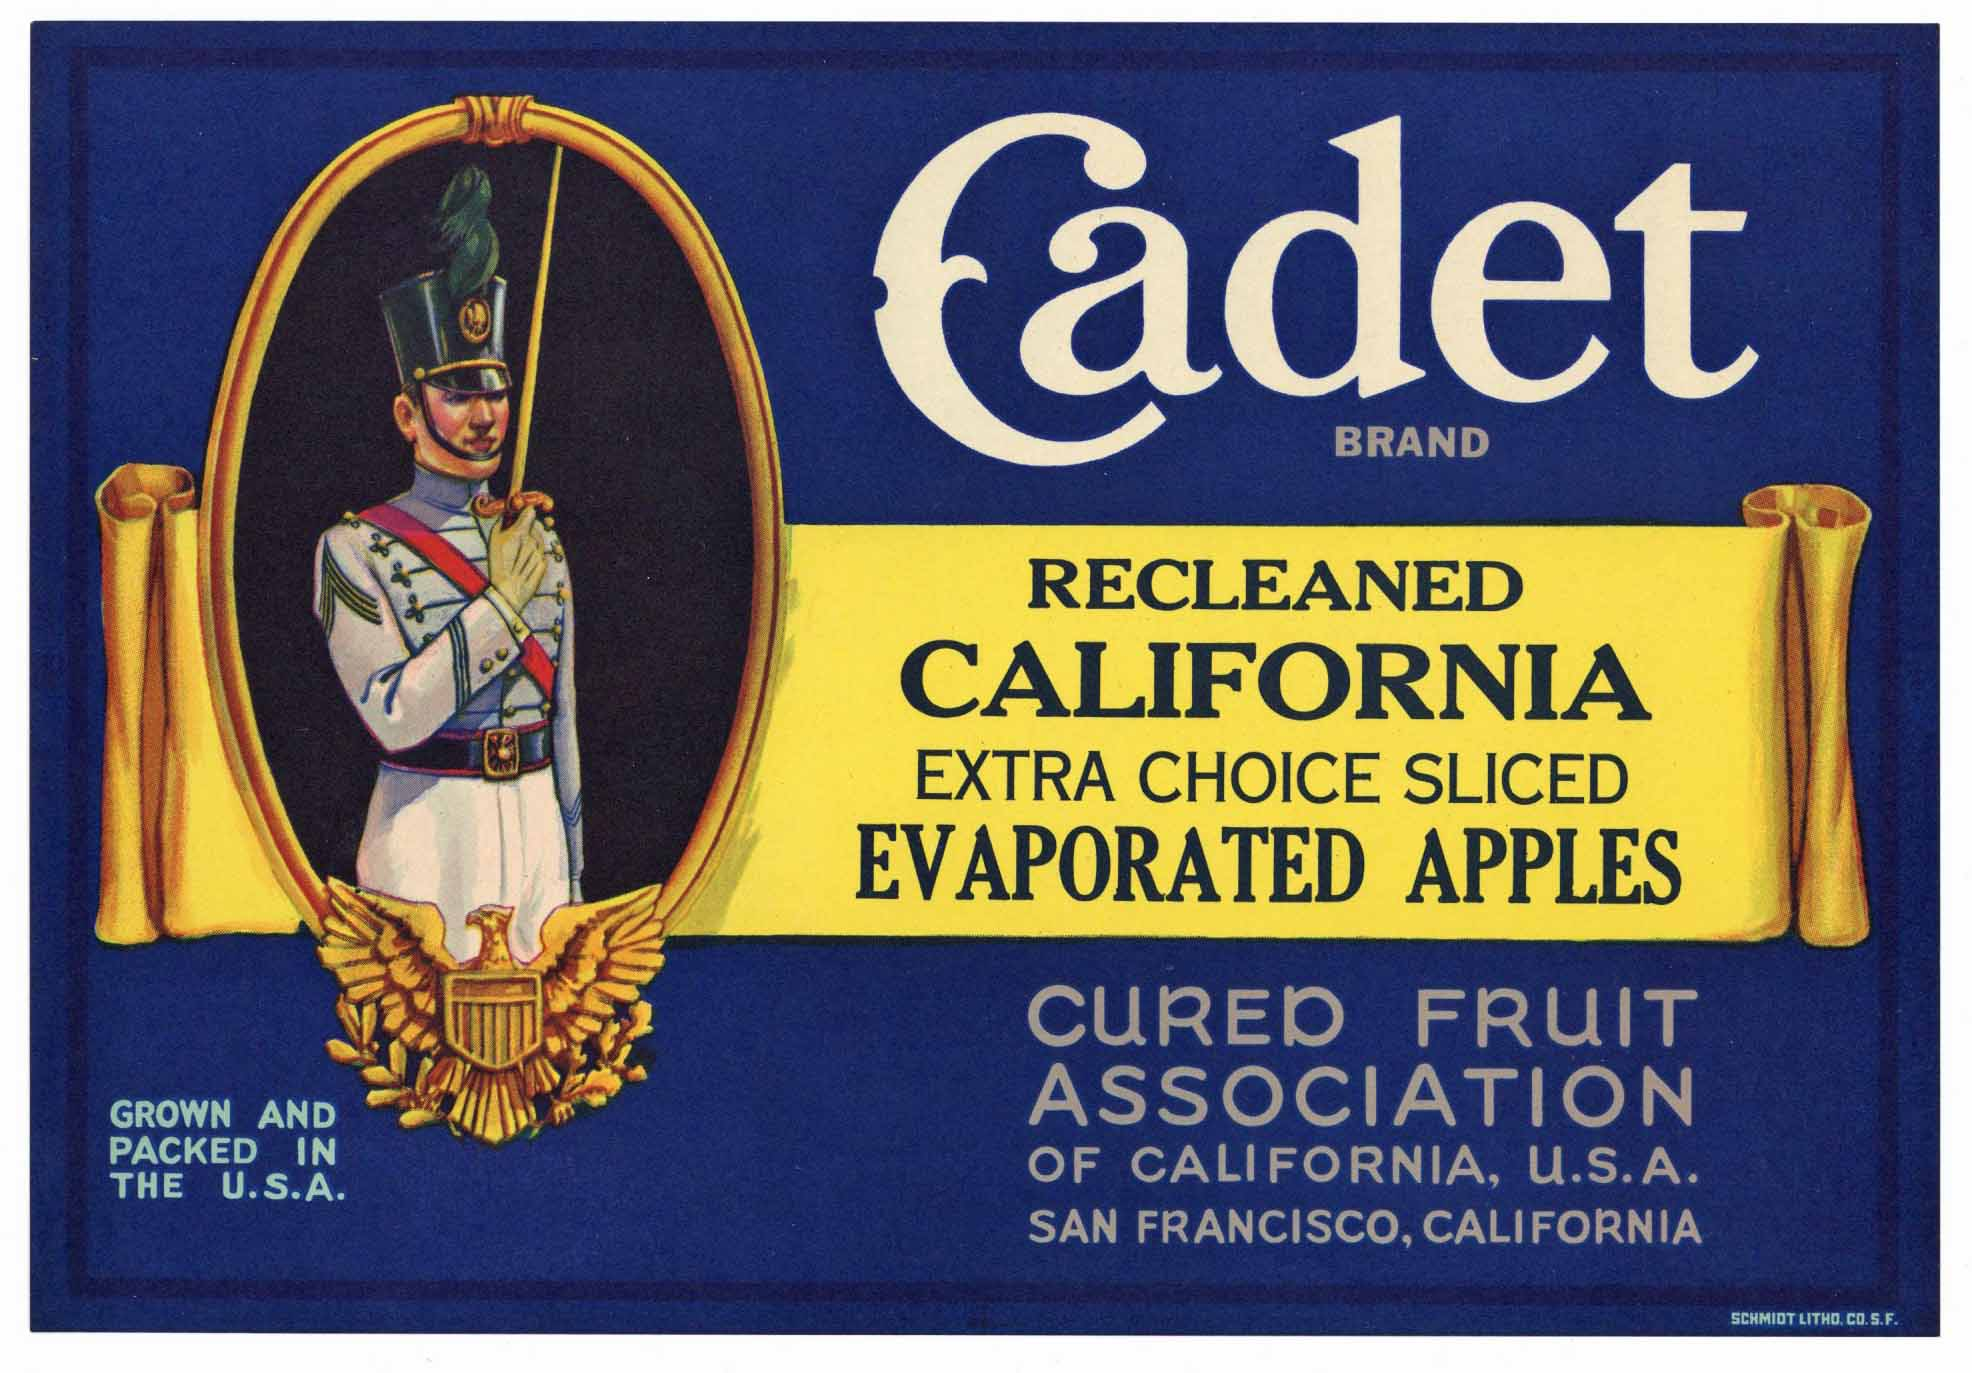 Cadet Brand Vintage Apple Crate Label, s